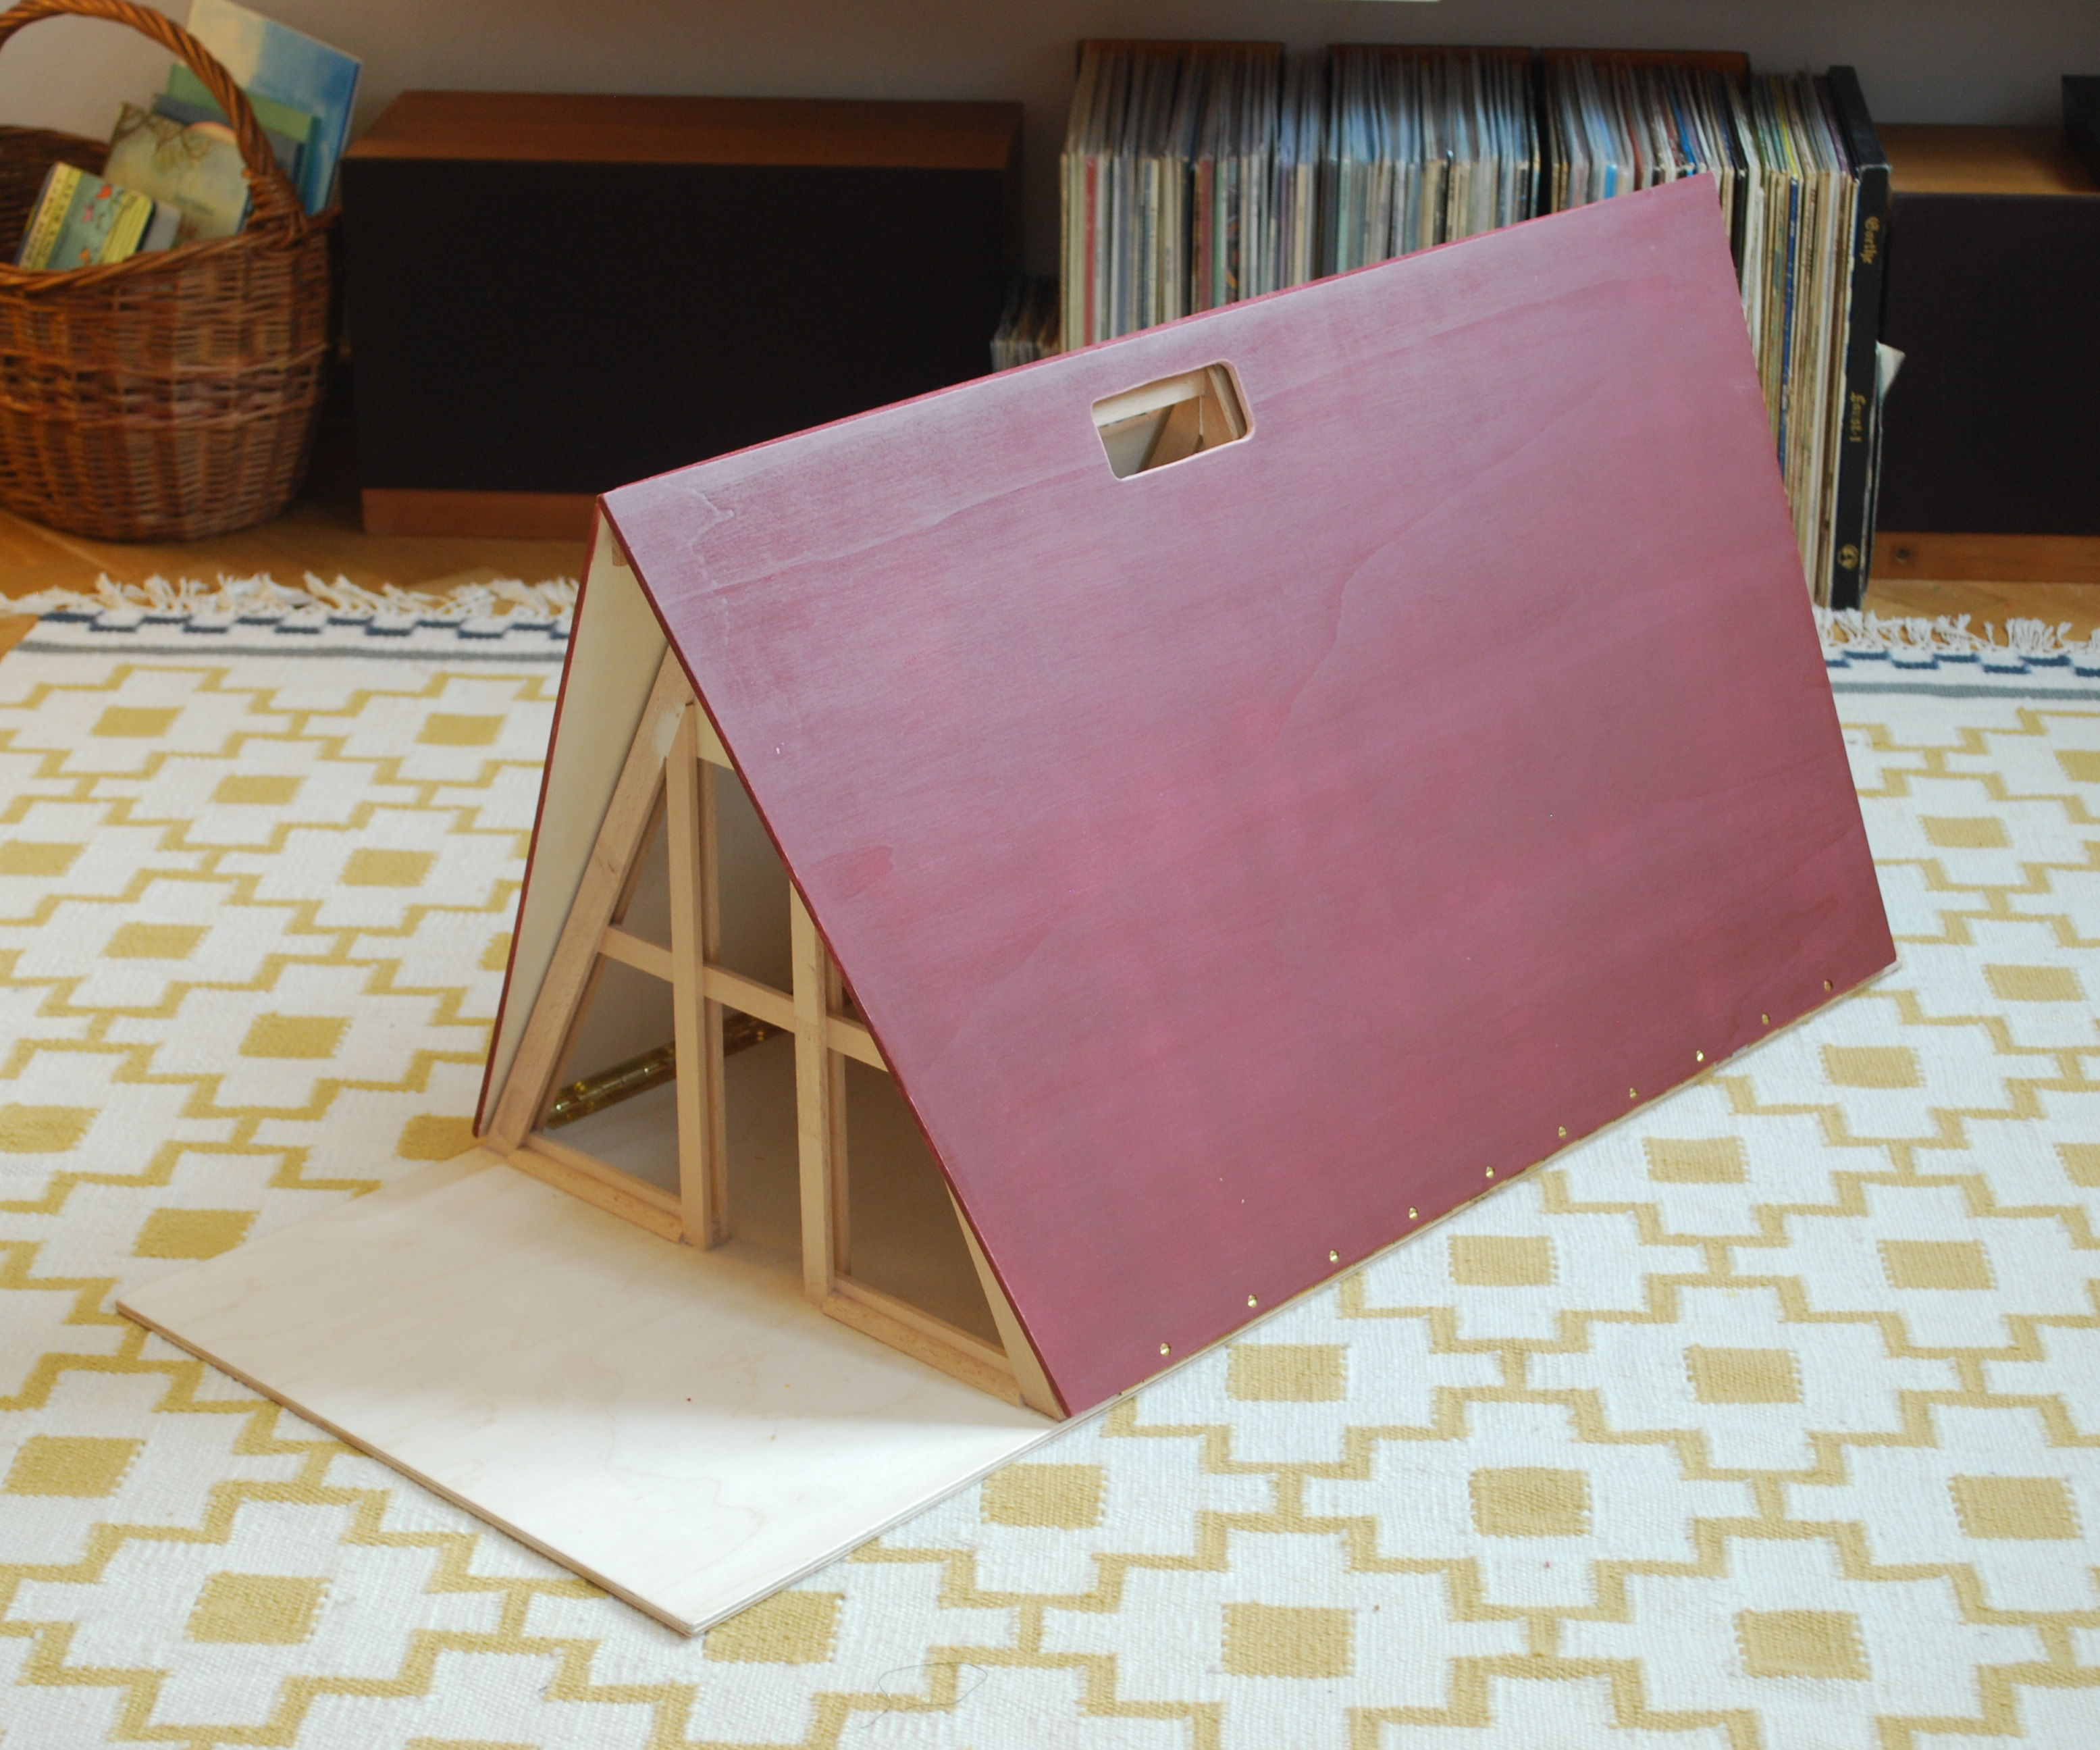 Vintage A-Frame Dollhouse (collapsable)